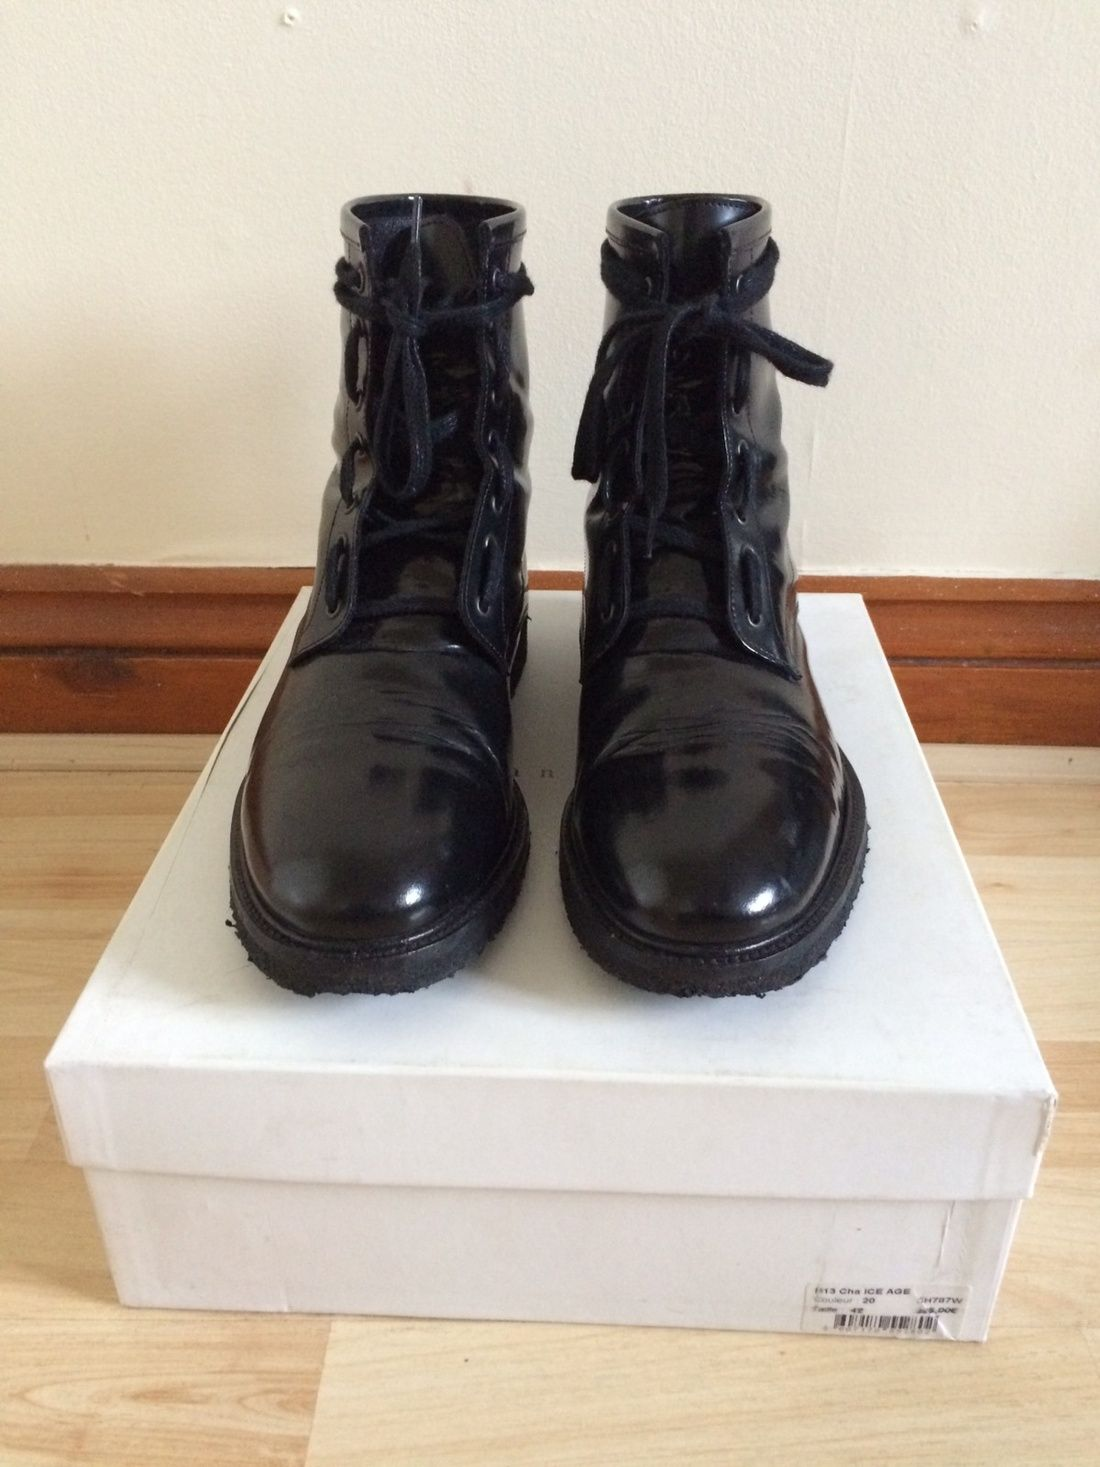 697bc6a62a2 Sandro Combat Boots Similar To Dior Homme Navigate And Saint Laurent Size 9   327 - Grailed